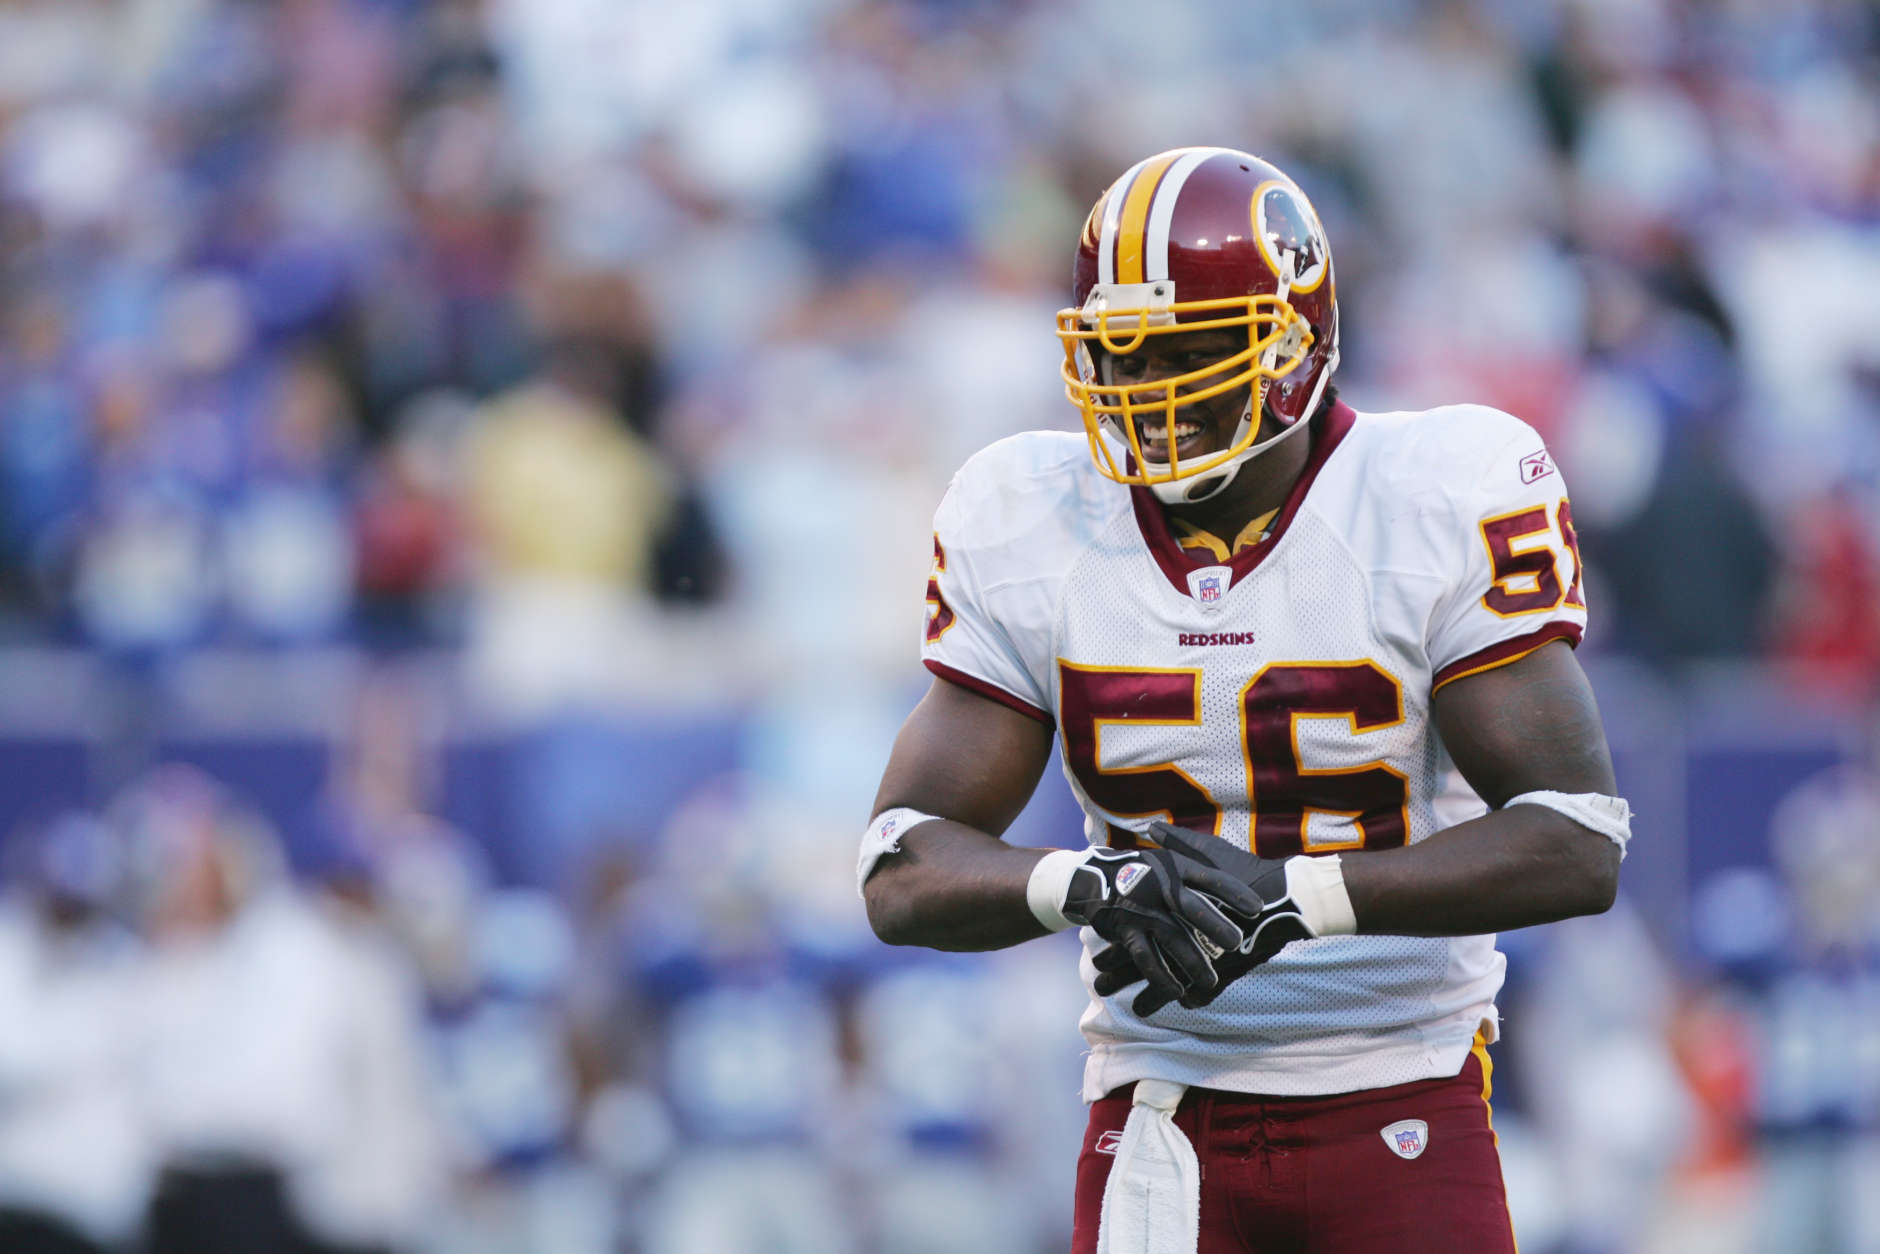 EAST RUTHERFORD, NJ - OCTOBER 30:  Linebacker LaVar Arrington #56 of the Washington Redskins looks on against the New York Giants at Giants Stadium on October 30, 2005 in East Rutherford, New Jersey. The Giants defeated the Redskins 36-0. (Photo by Ezra Shaw/Getty Images)